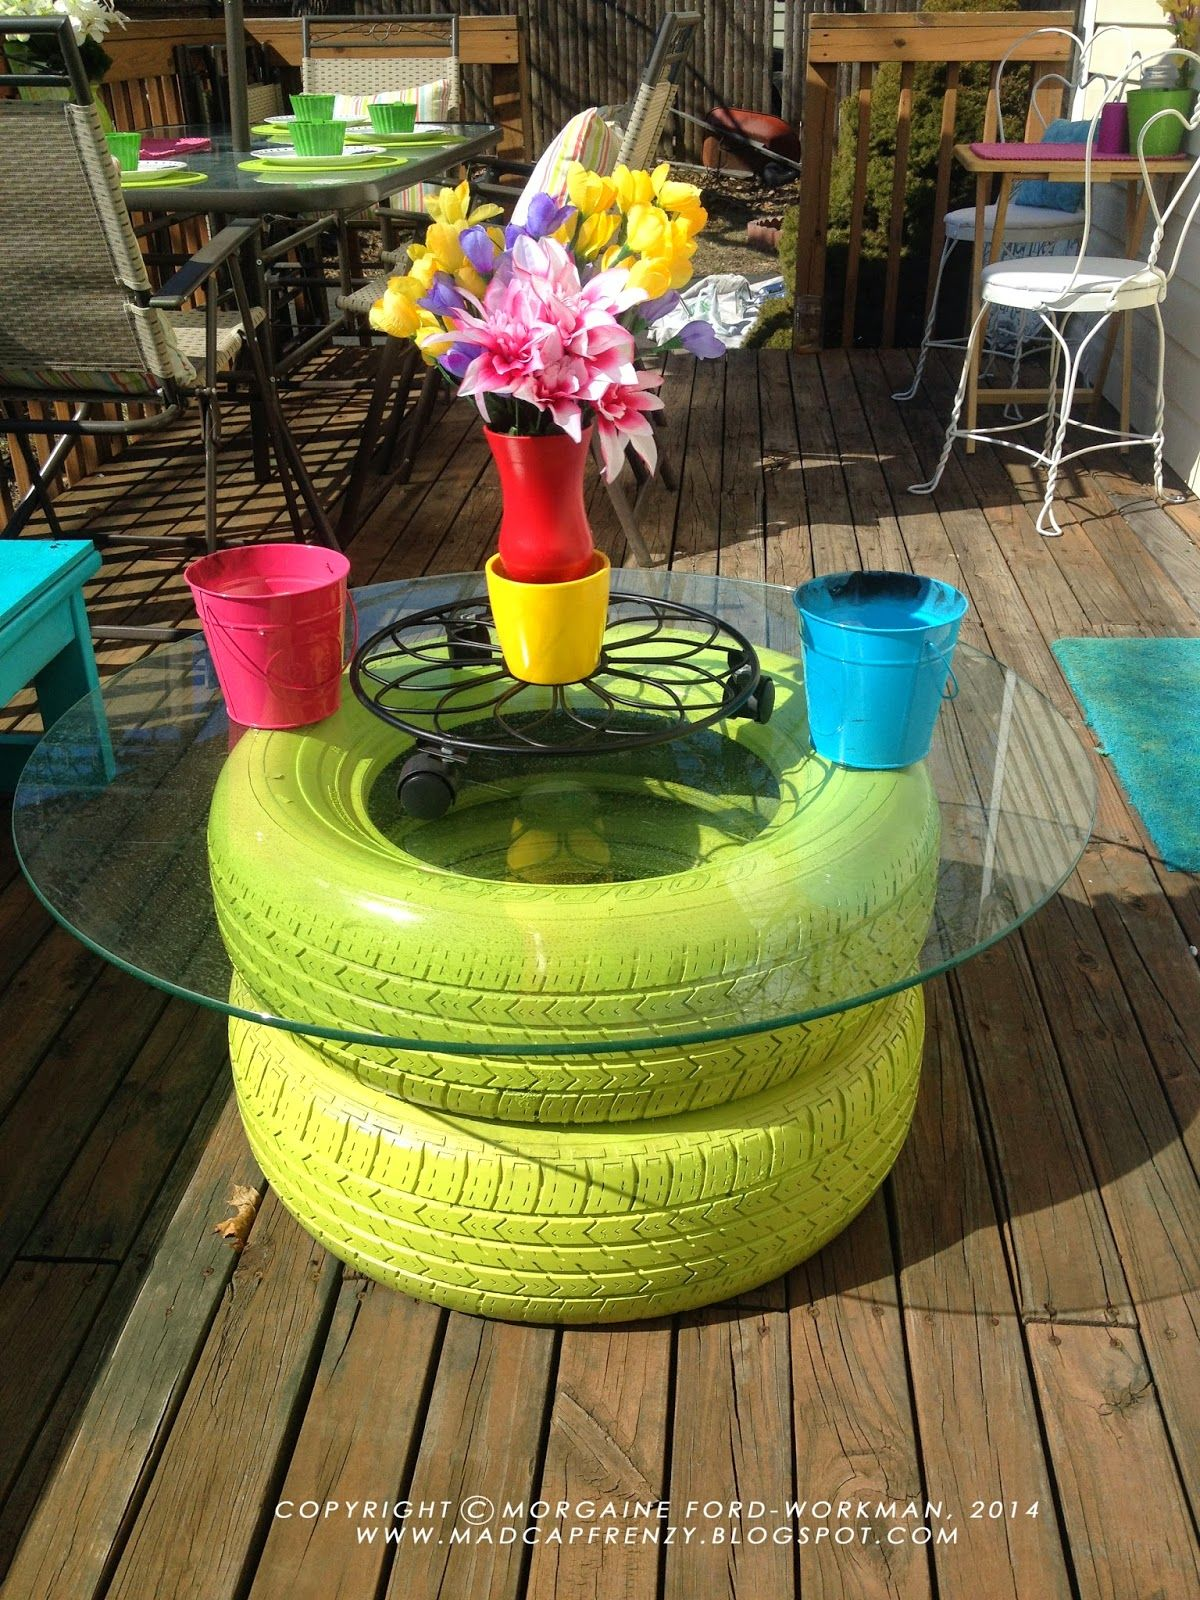 Garden decor with tyres  Madcap Frenzy graphic design diy papercrafts and everything in